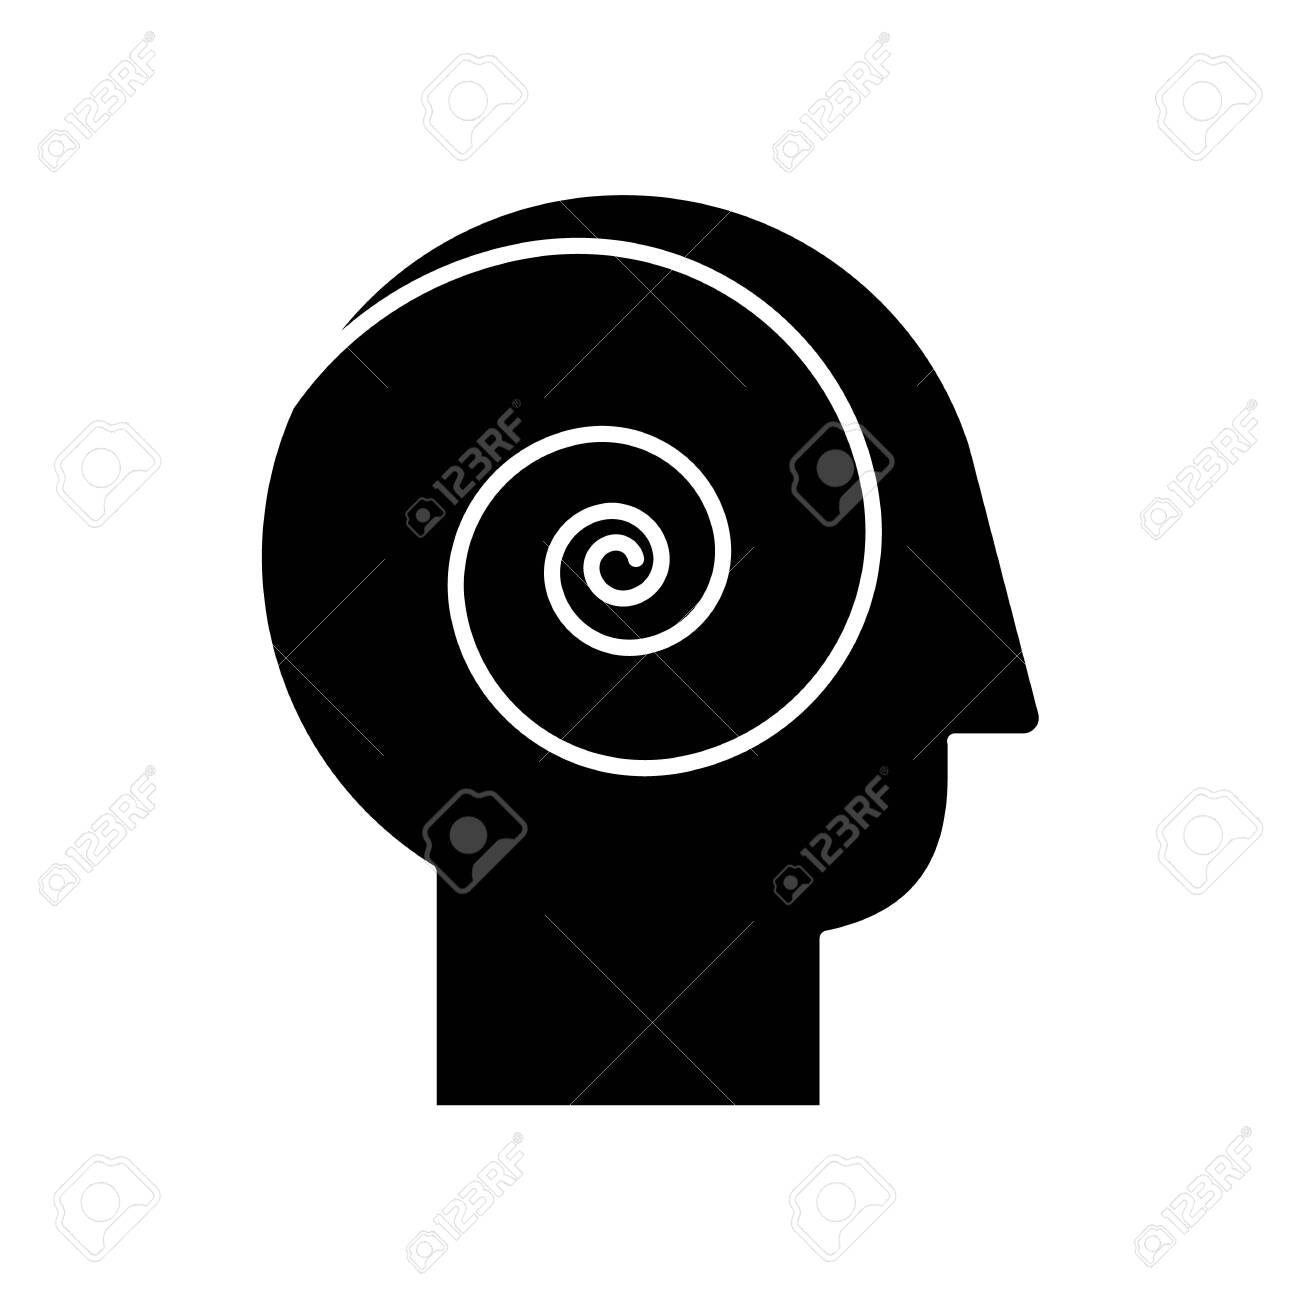 Philosophical Film Black Glyph Icon Filmmaking Style Cinematography Royalty Free Cliparts Vectors And Stock Illustration Image 145739885